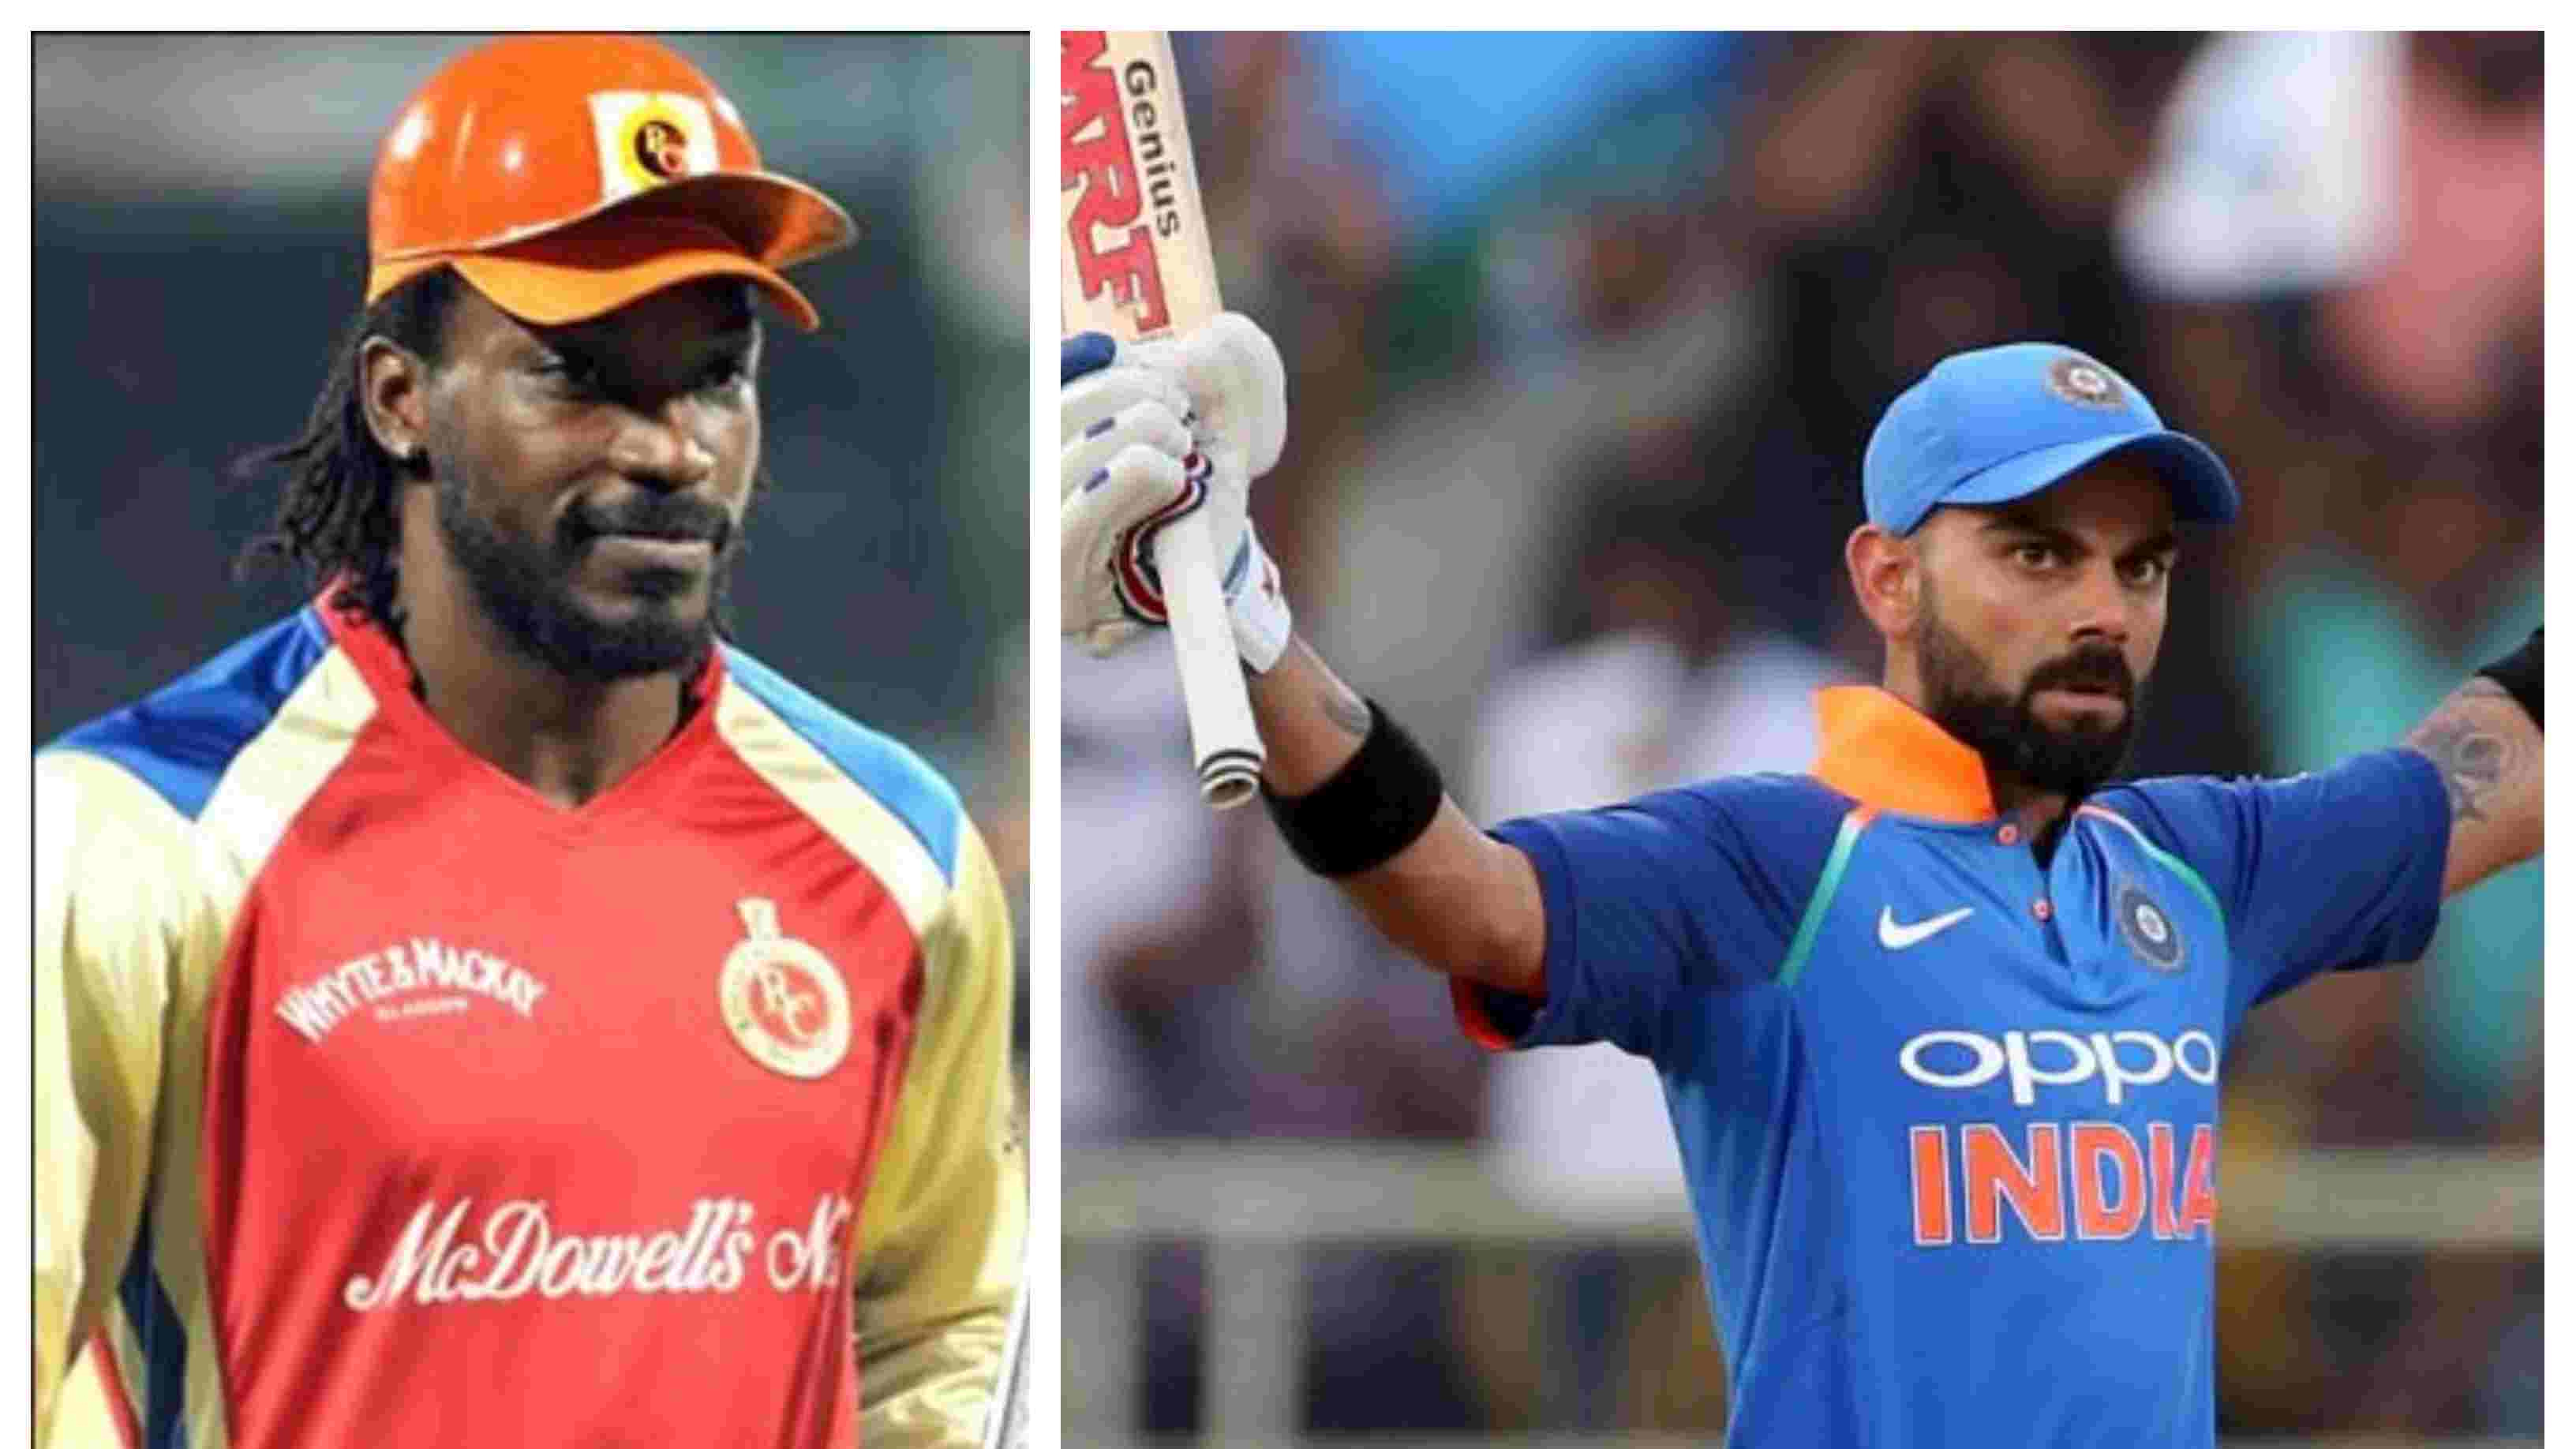 IND v WI 2018: WATCH – Chris Gayle's heart-warming message for Virat Kohli on reaching the 10000-run mark in ODIs